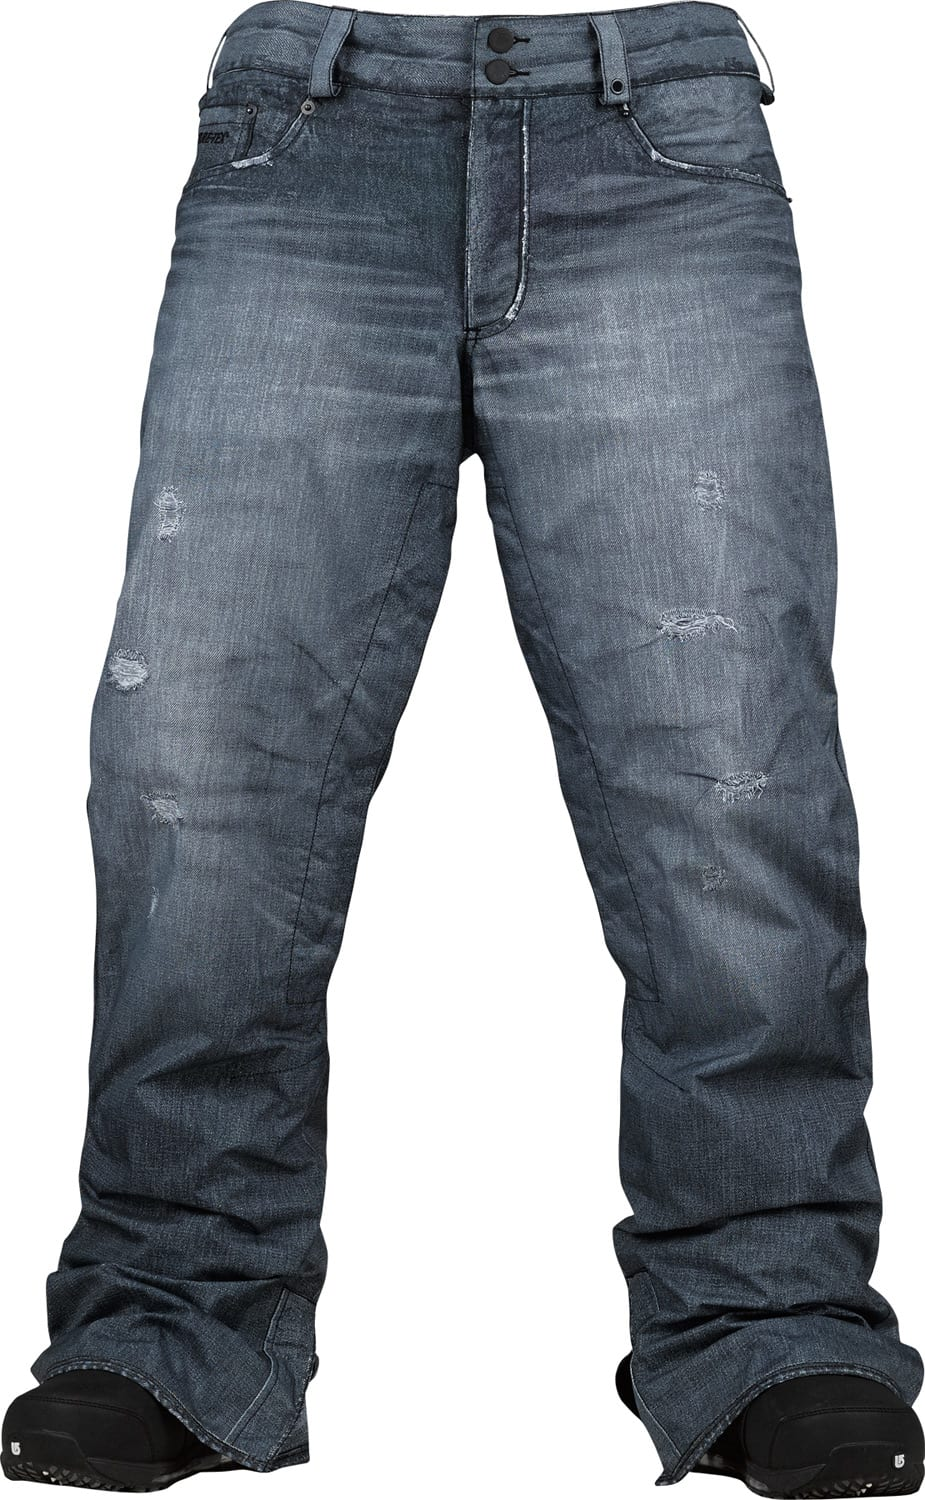 On Sale Burton The Jeans Gore-Tex Snowboard Pants up to 50% off